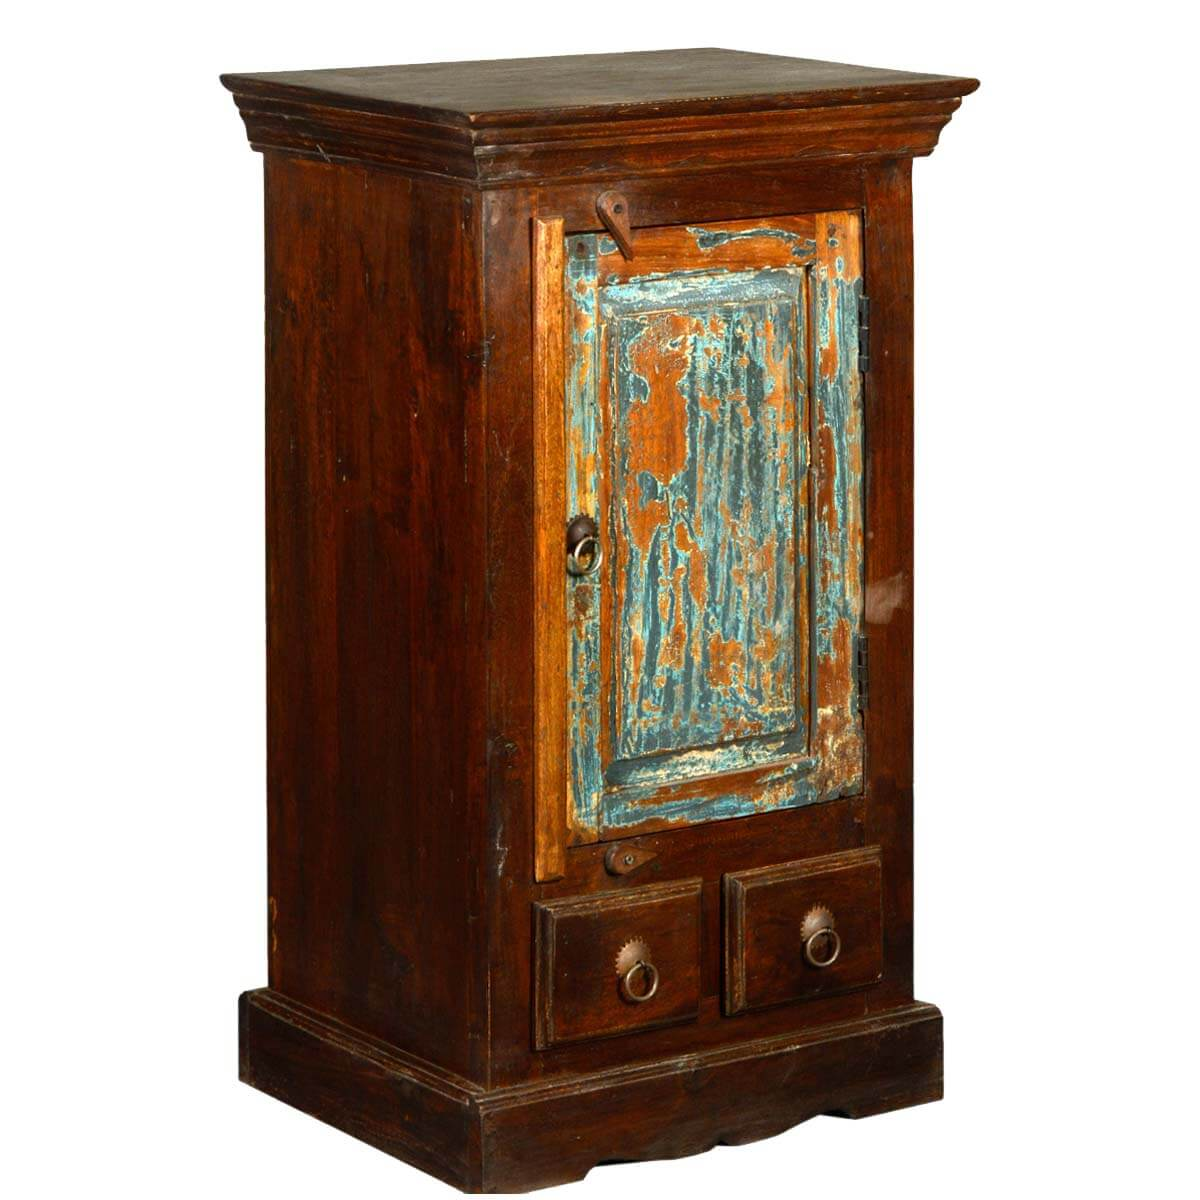 Colonial Handcrafted Rustic Old Wood 2 Drawer Nightstand Cabinet